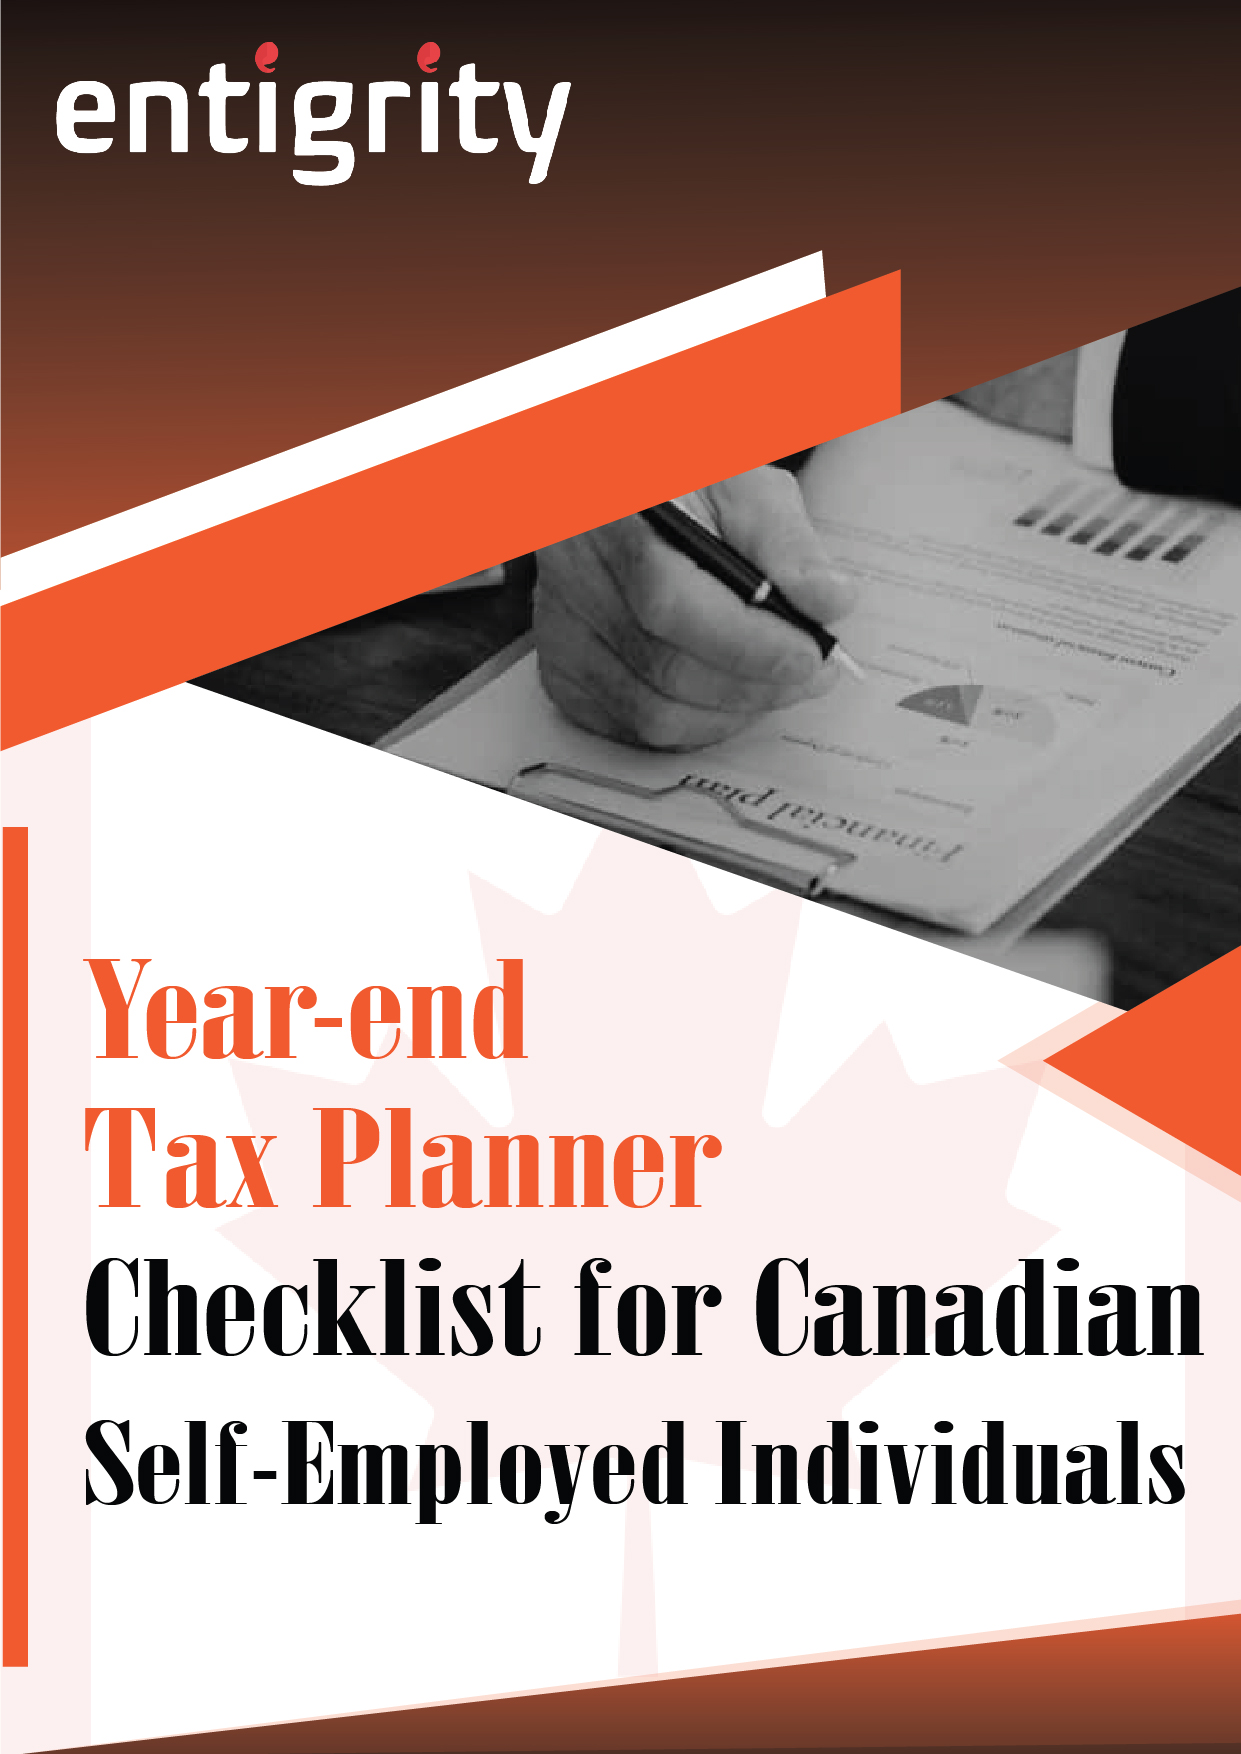 Year-end Tax Planner Checklist for Canadian Self-Employed Individuals